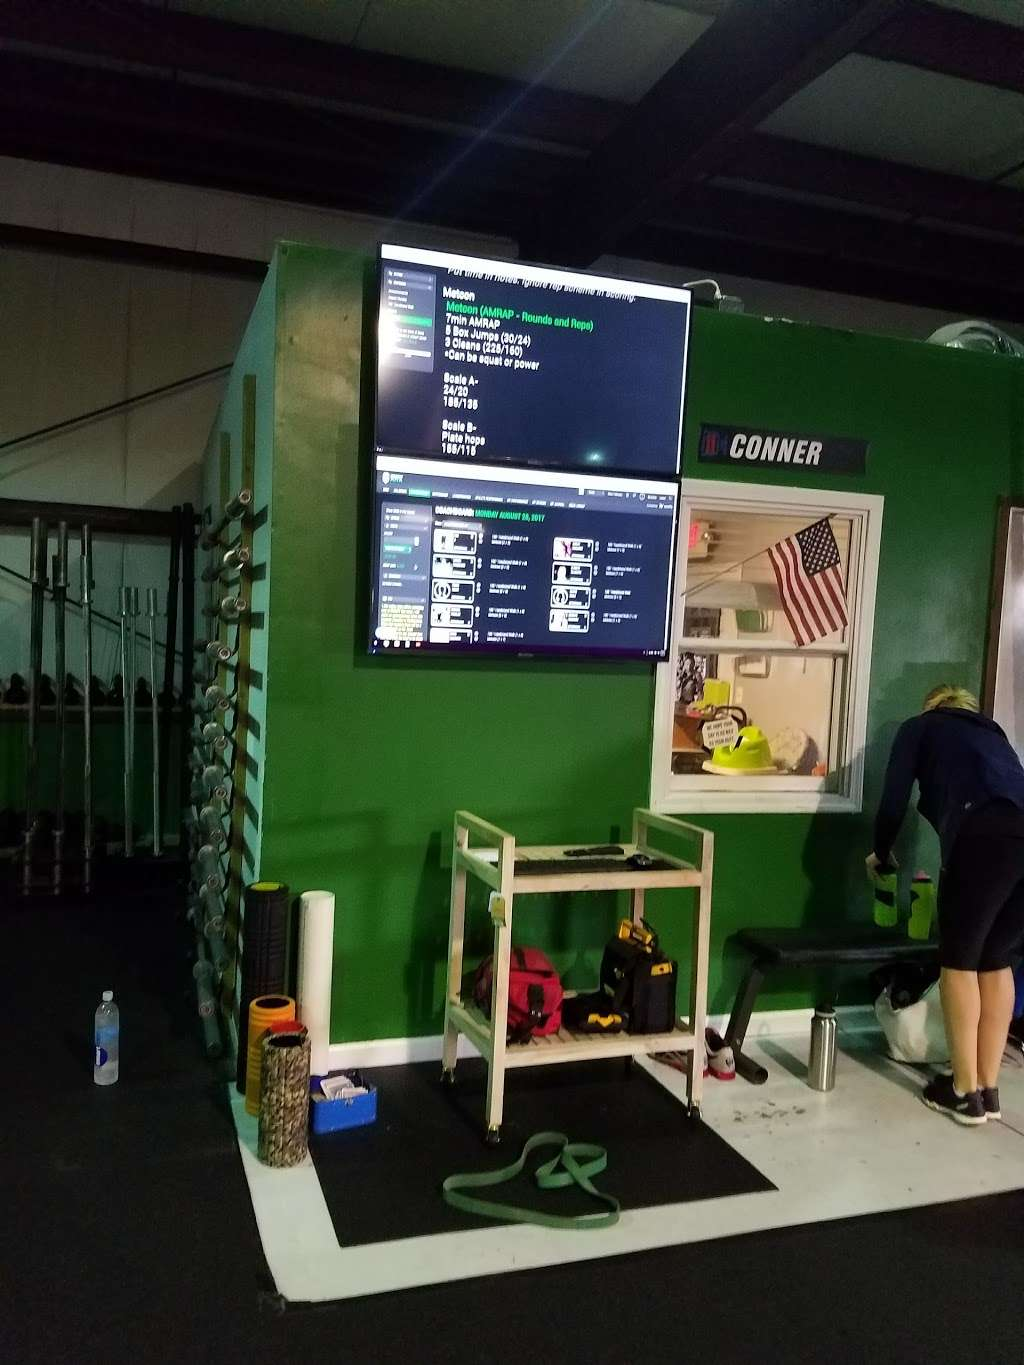 CrossFit Arx - gym    Photo 1 of 6   Address: 1301 N. Industrial Way North, Toms River, NJ 08755, USA   Phone: (609) 384-6380